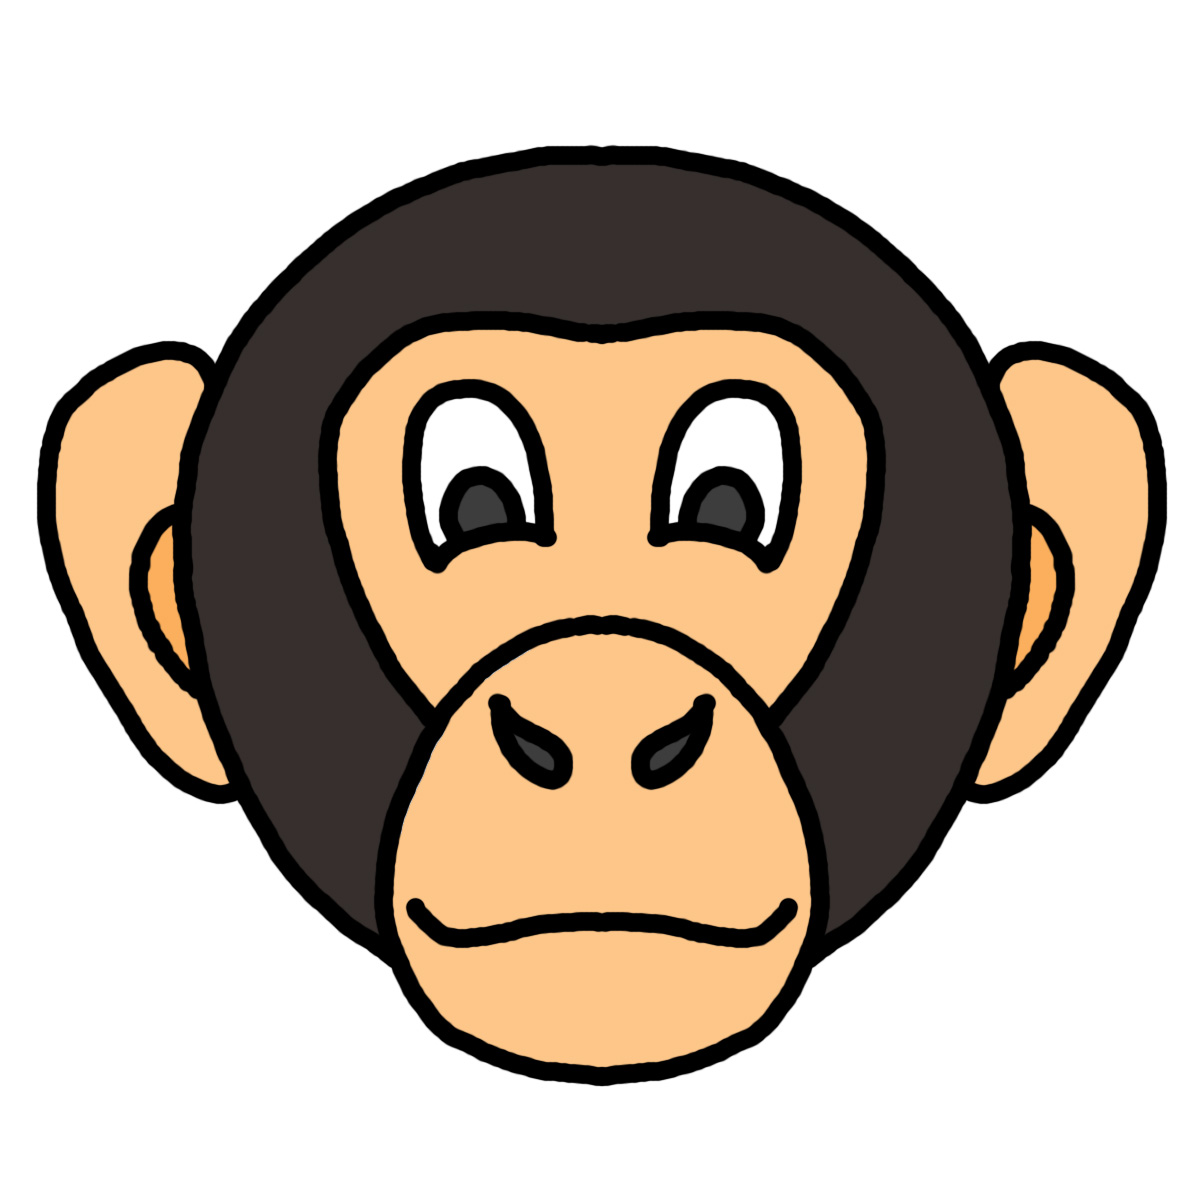 Free Monkey Face Clipart, Download Free Clip Art, Free Clip.